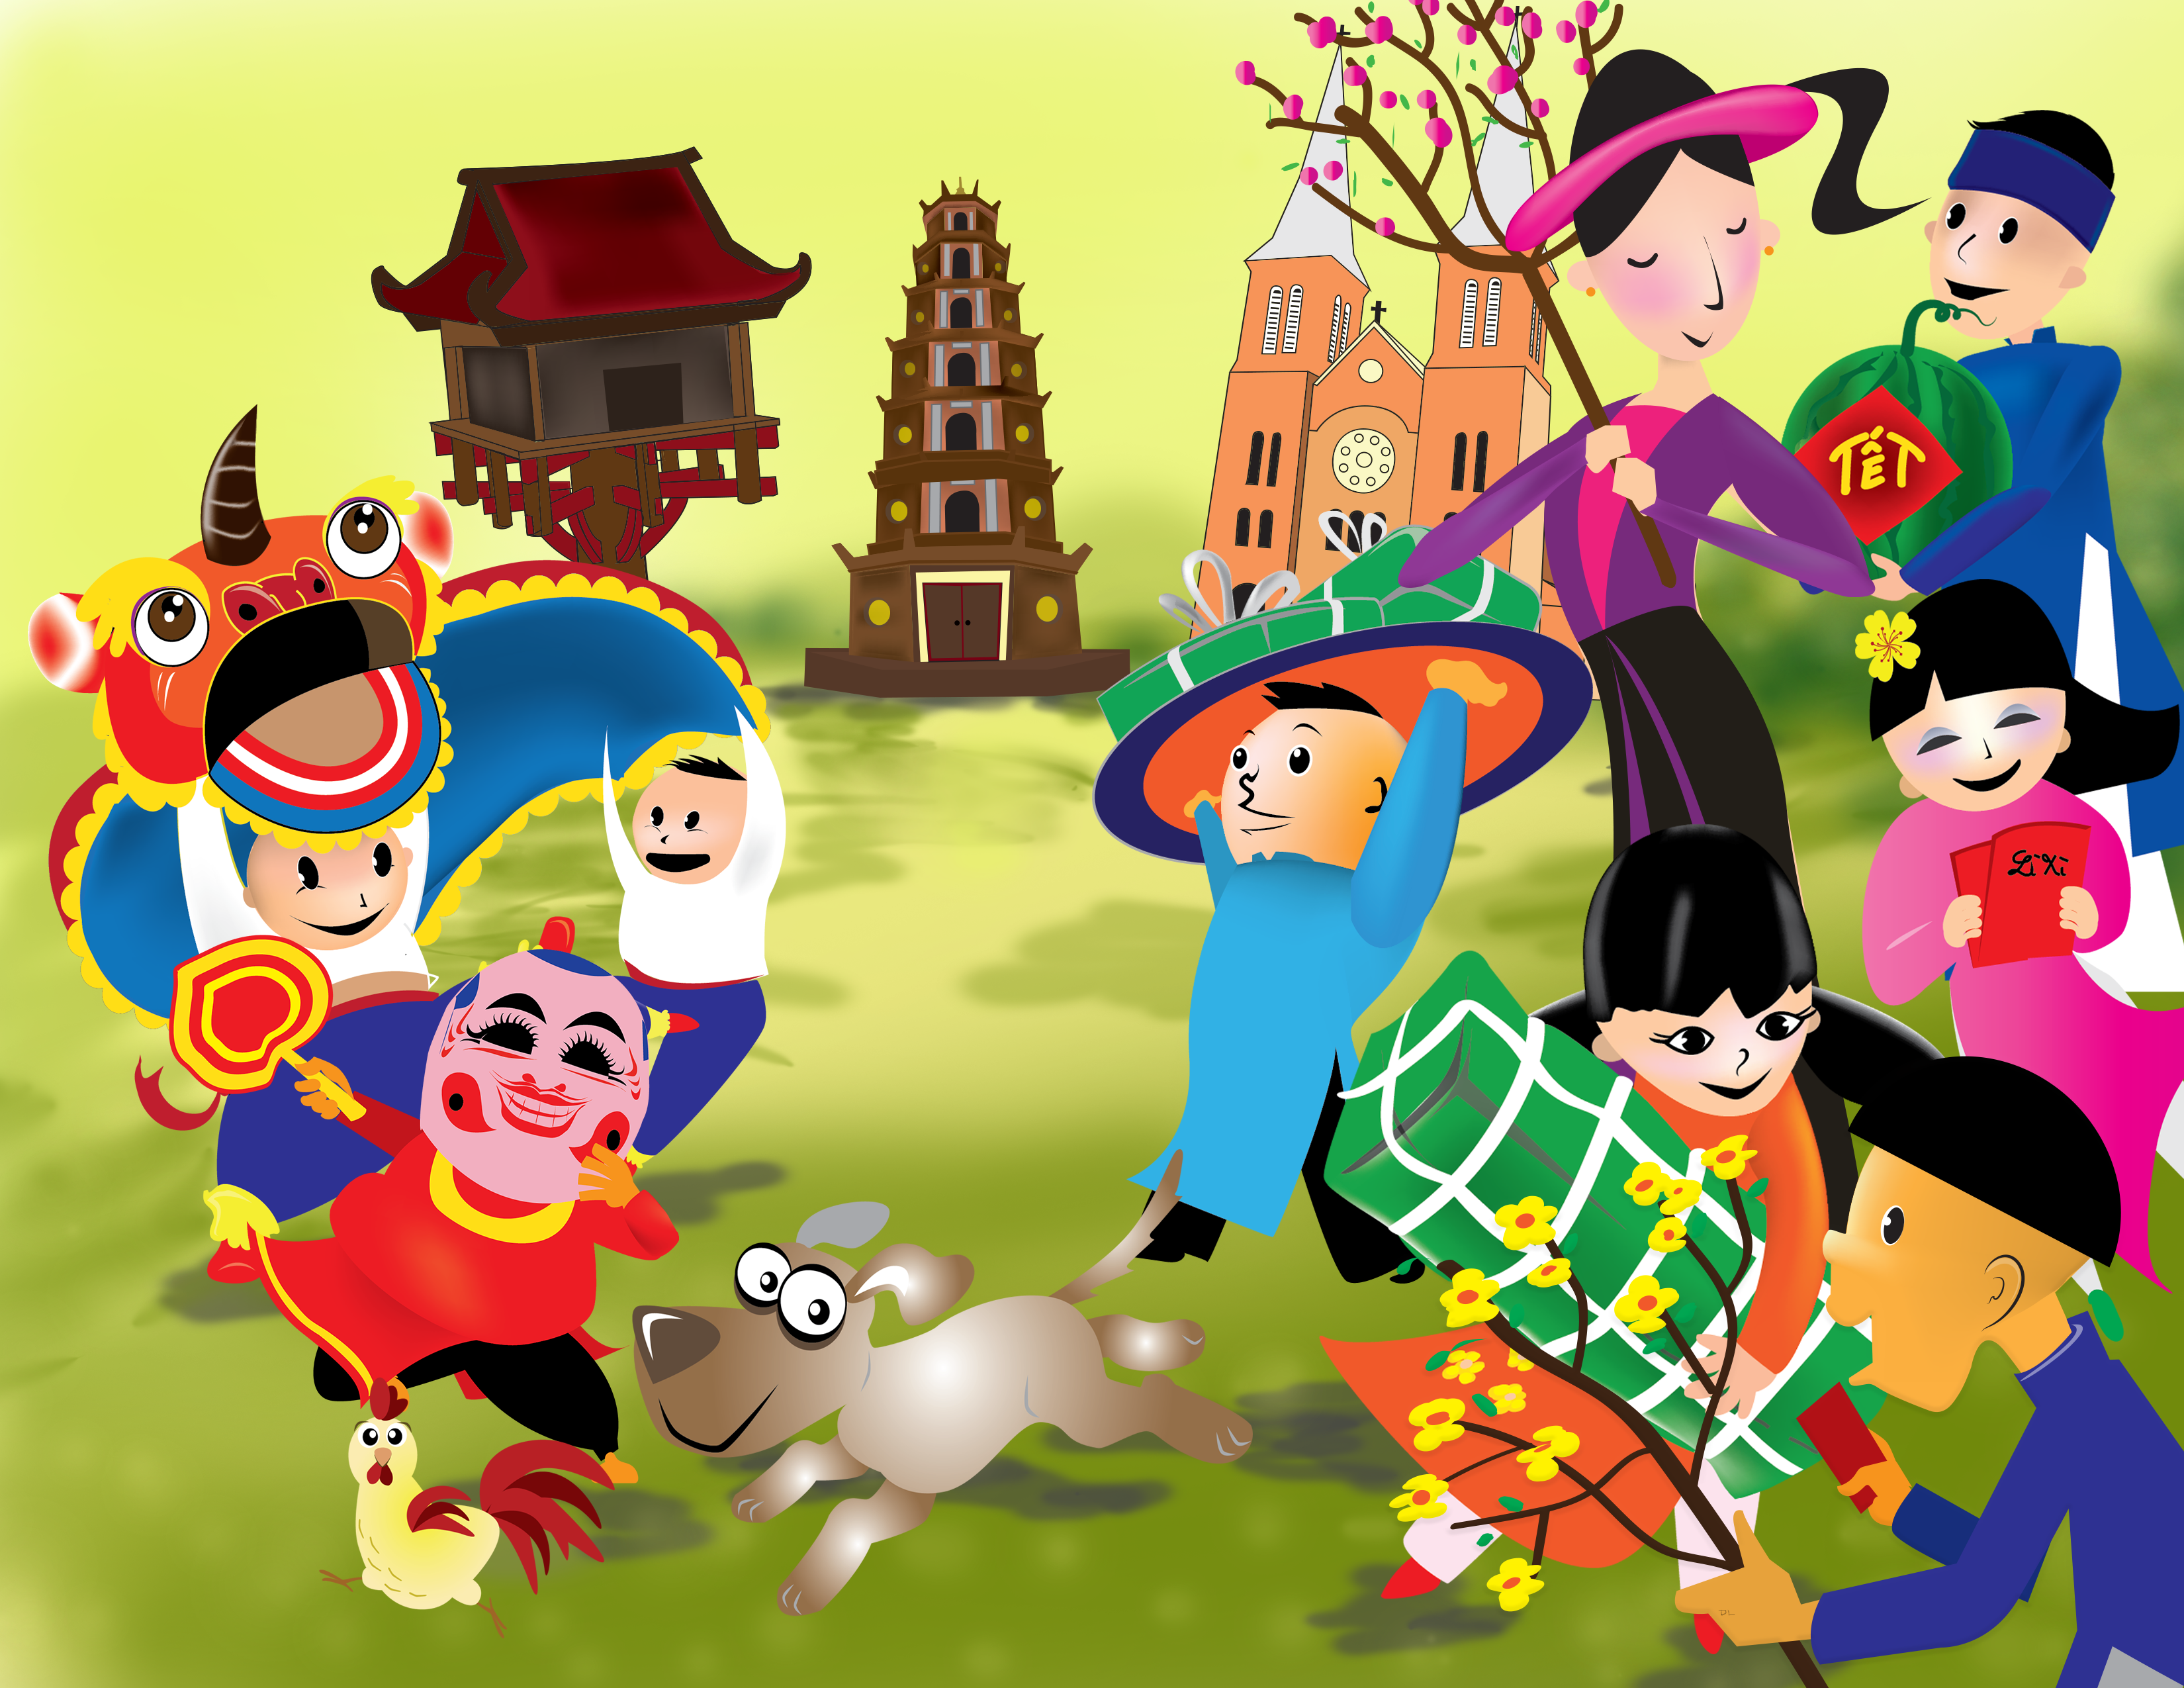 Tet Holiday Clipart.